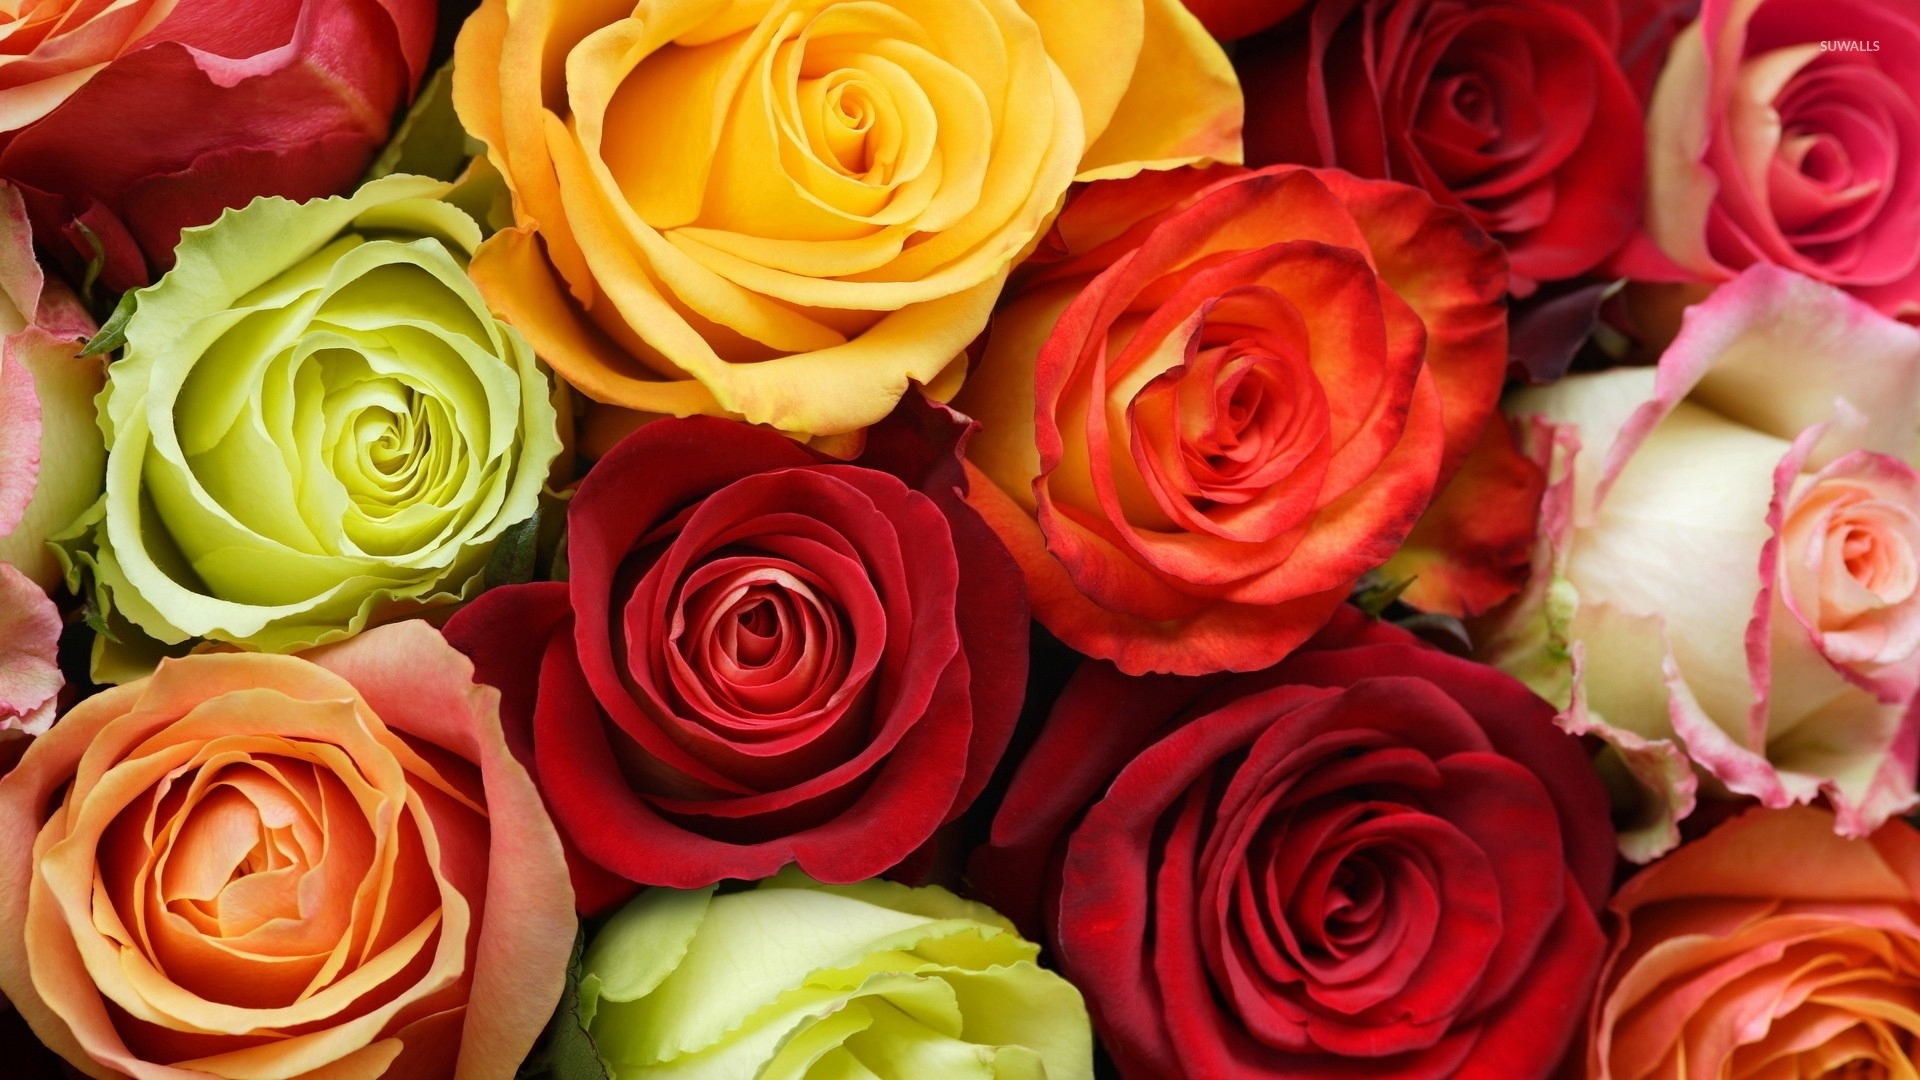 Colorful Roses Wallpaper